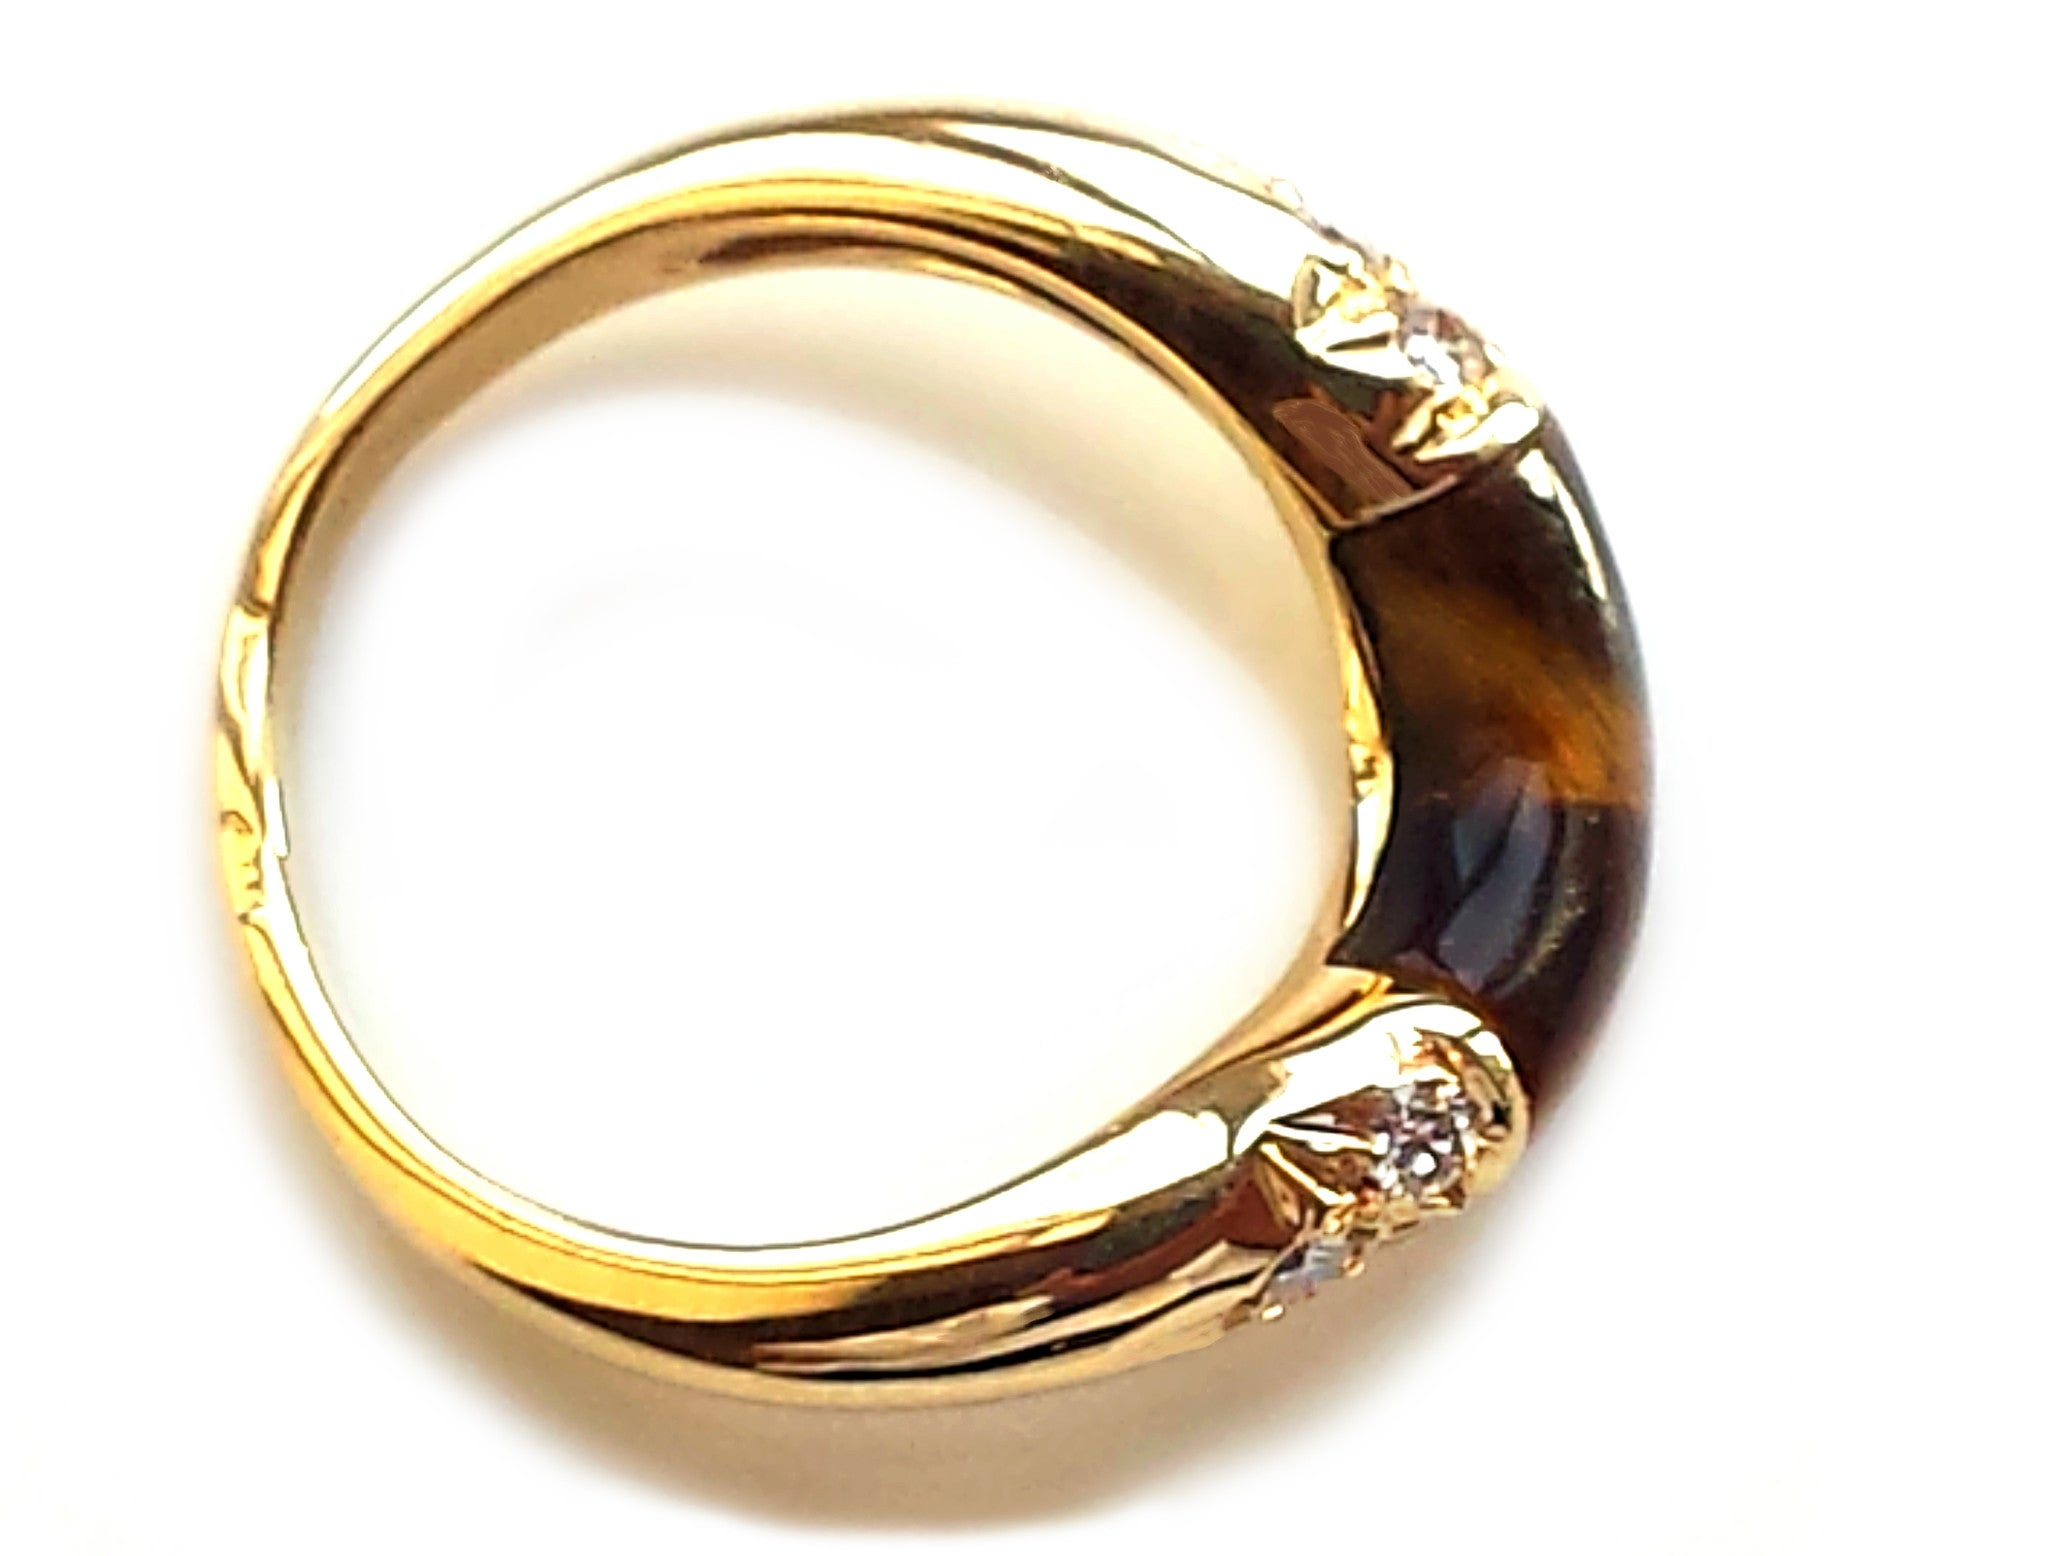 vintage 1960s cartier tigers eye diamond wave ring 18k yellow gold